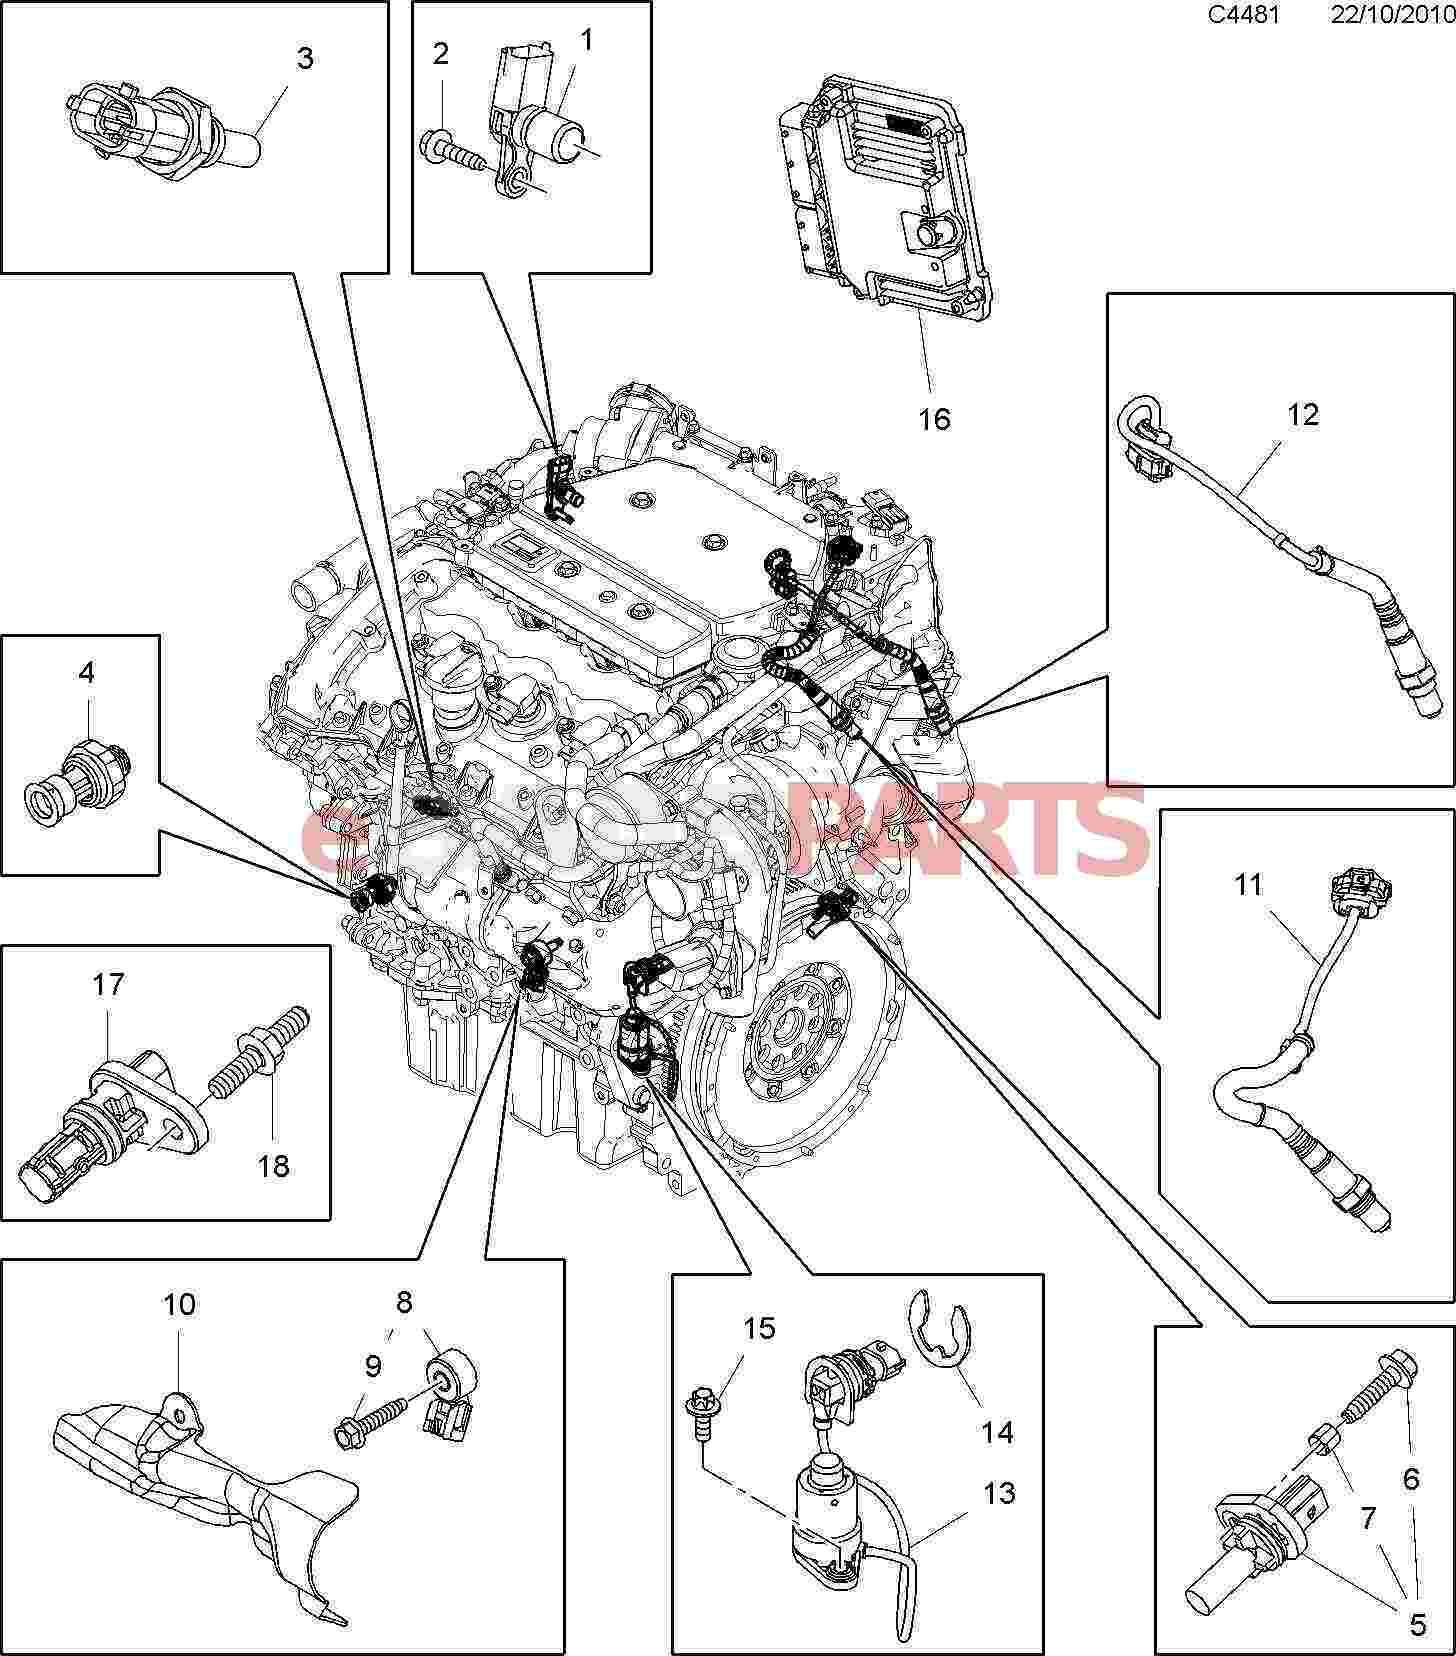 2004 saab 9 5 engine diagram auto electrical wiring diagram u2022 rh focusnews co Saab 9 3 Parts Diagram Saab 9 3 Parts Diagram